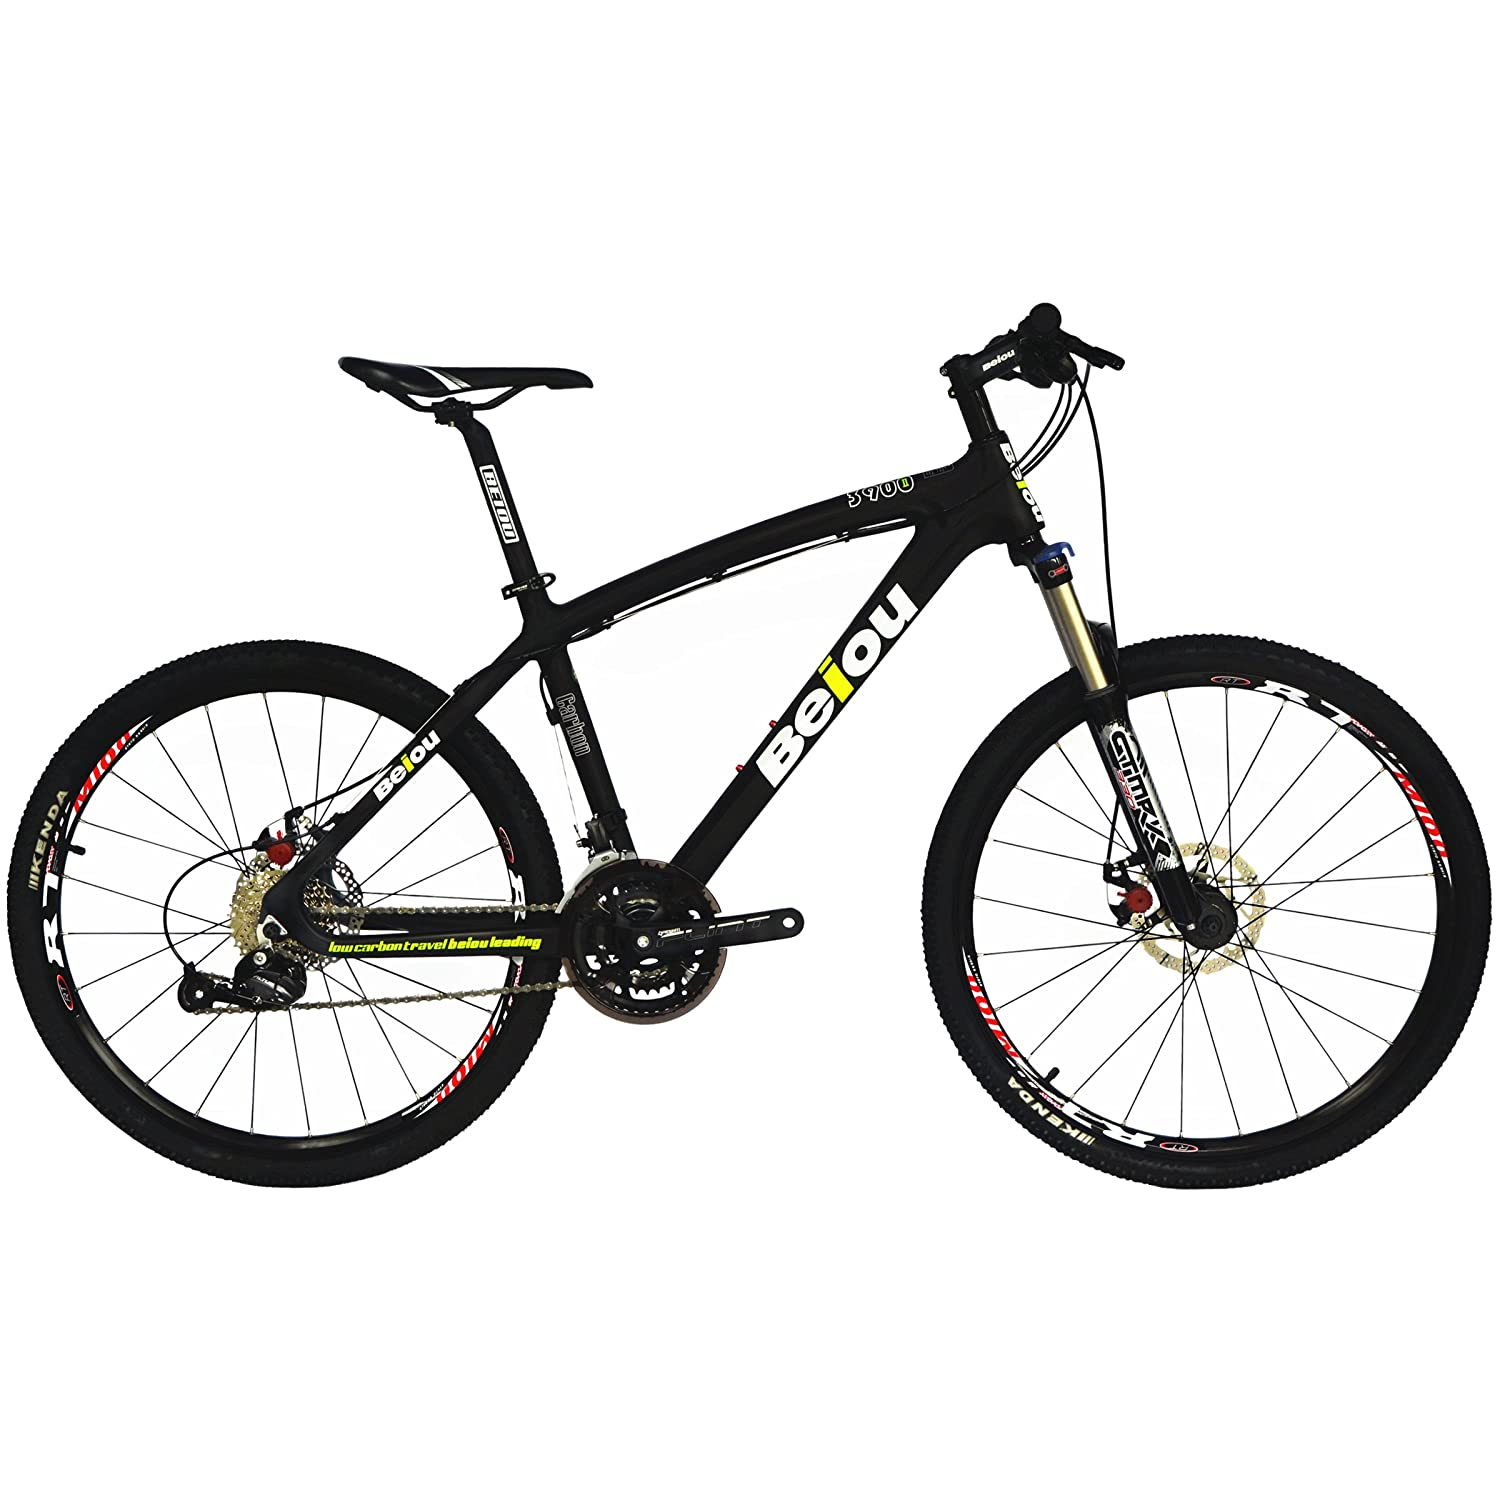 Amazon.com : BEIOU Toray T700 Carbon Fiber Mountain Bike Complete ...